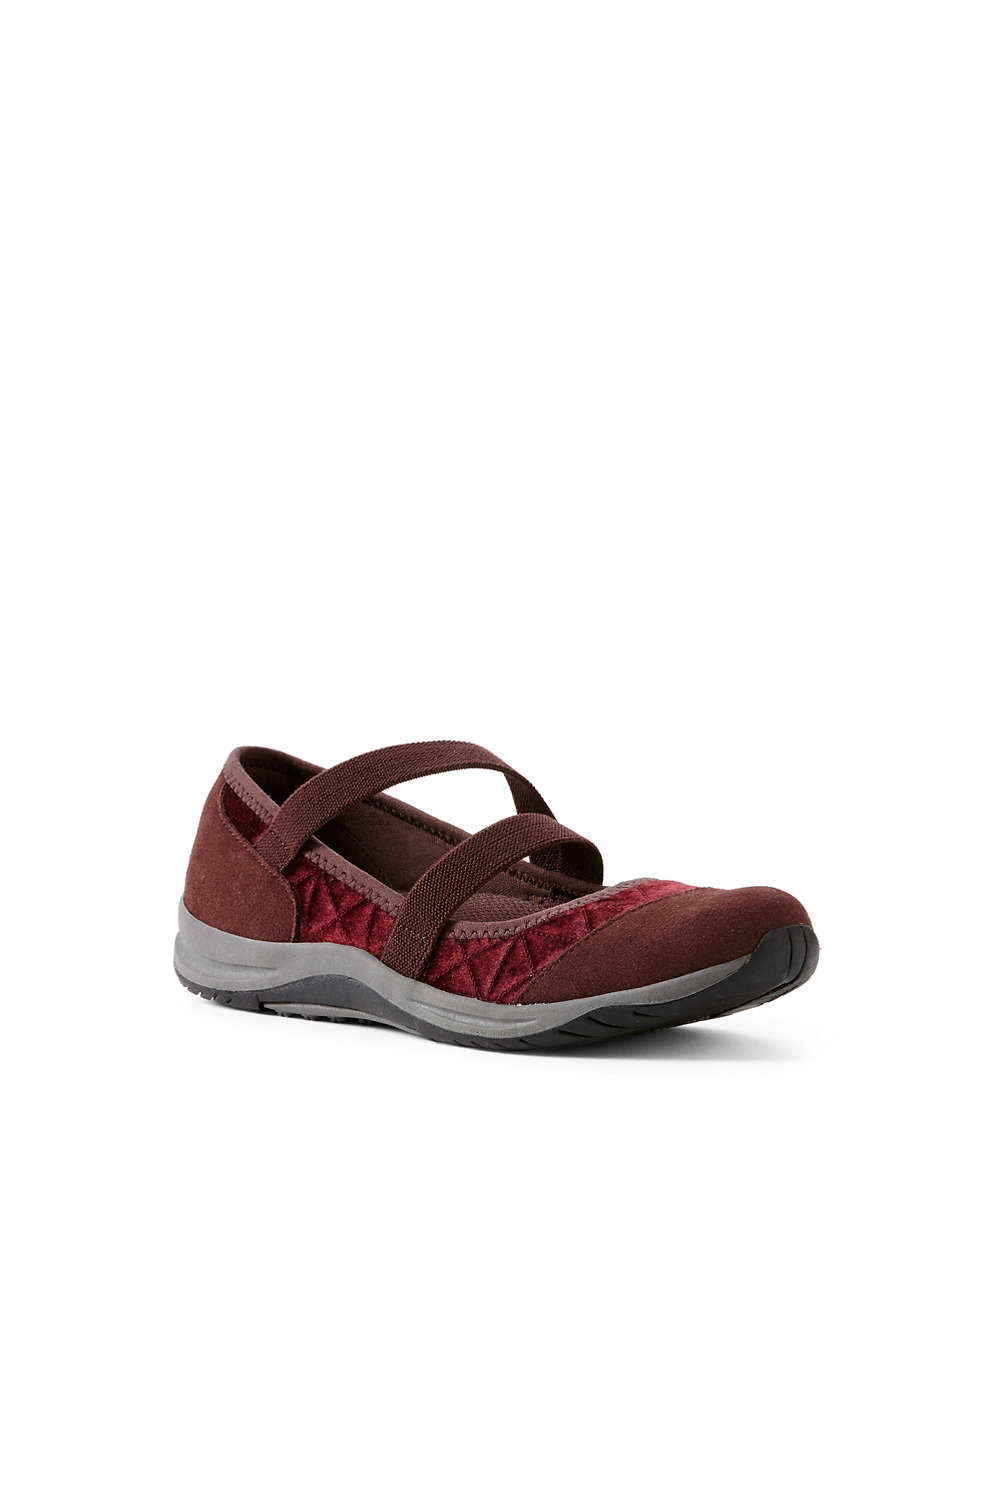 Women s Comfort Mary Jane Shoes from Lands  End 5cdc1edbaf